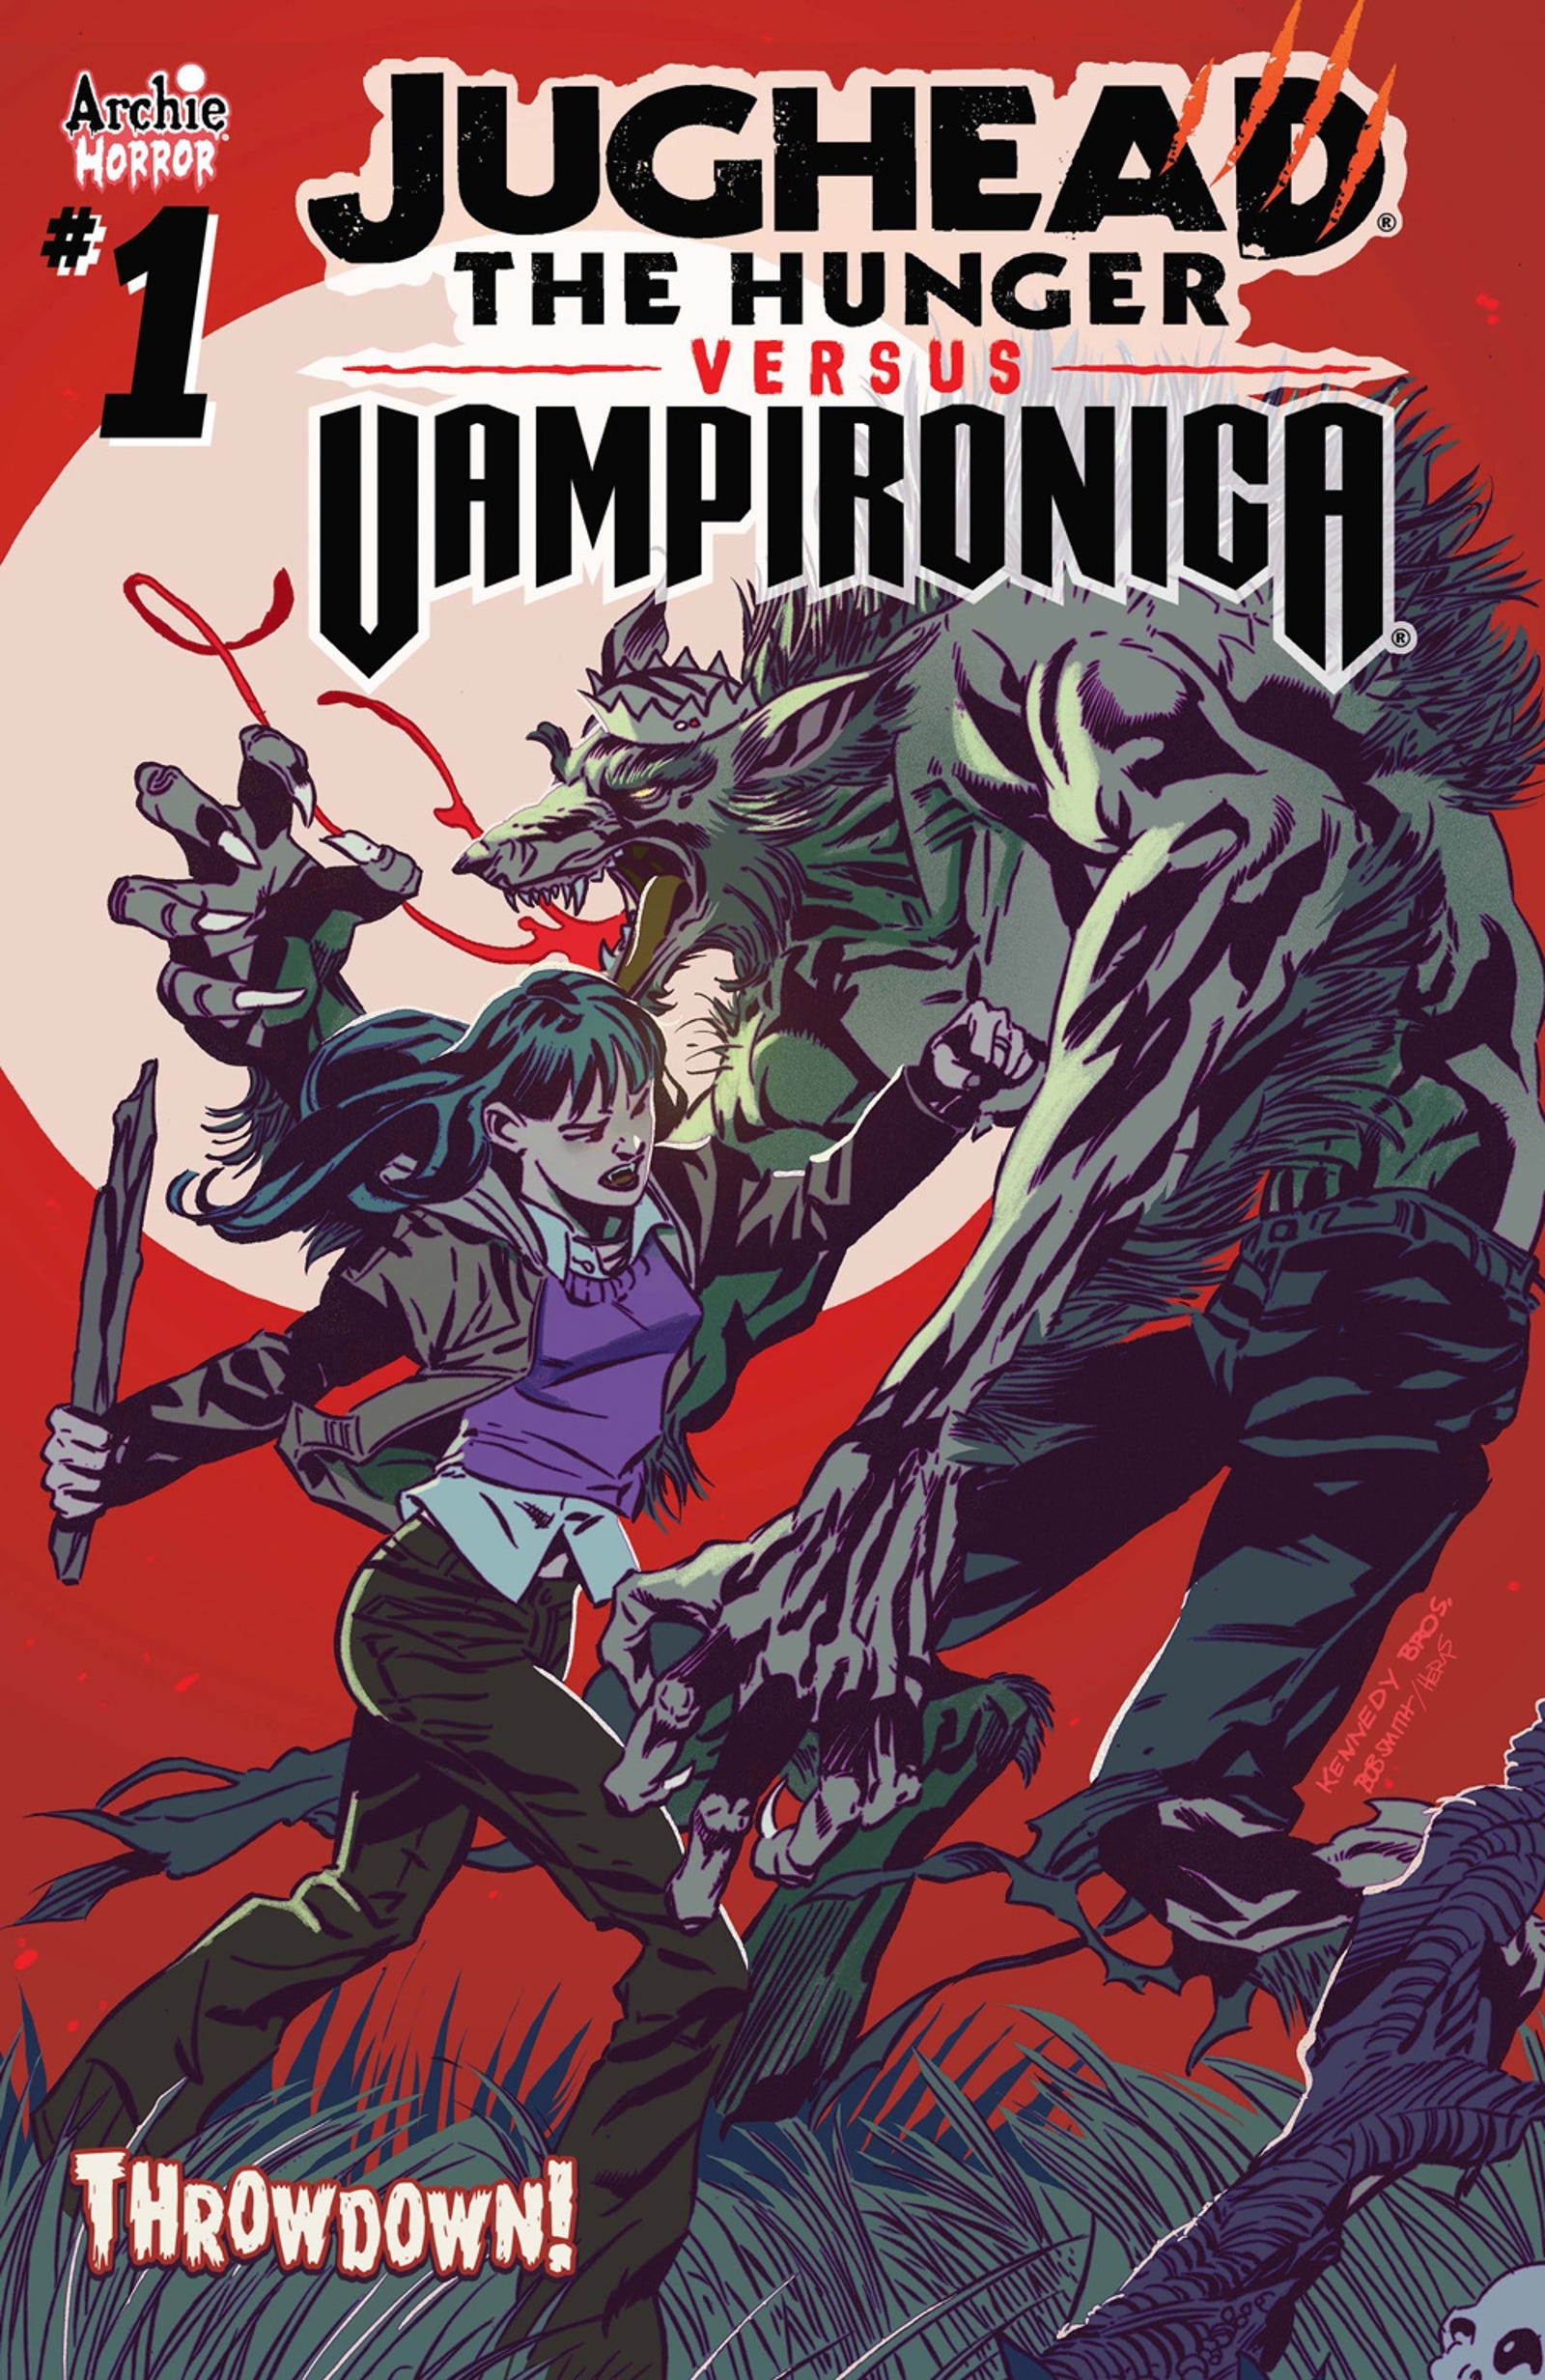 A Gallery of covers for Jughead: The Hunger vs. Vampironica #1.